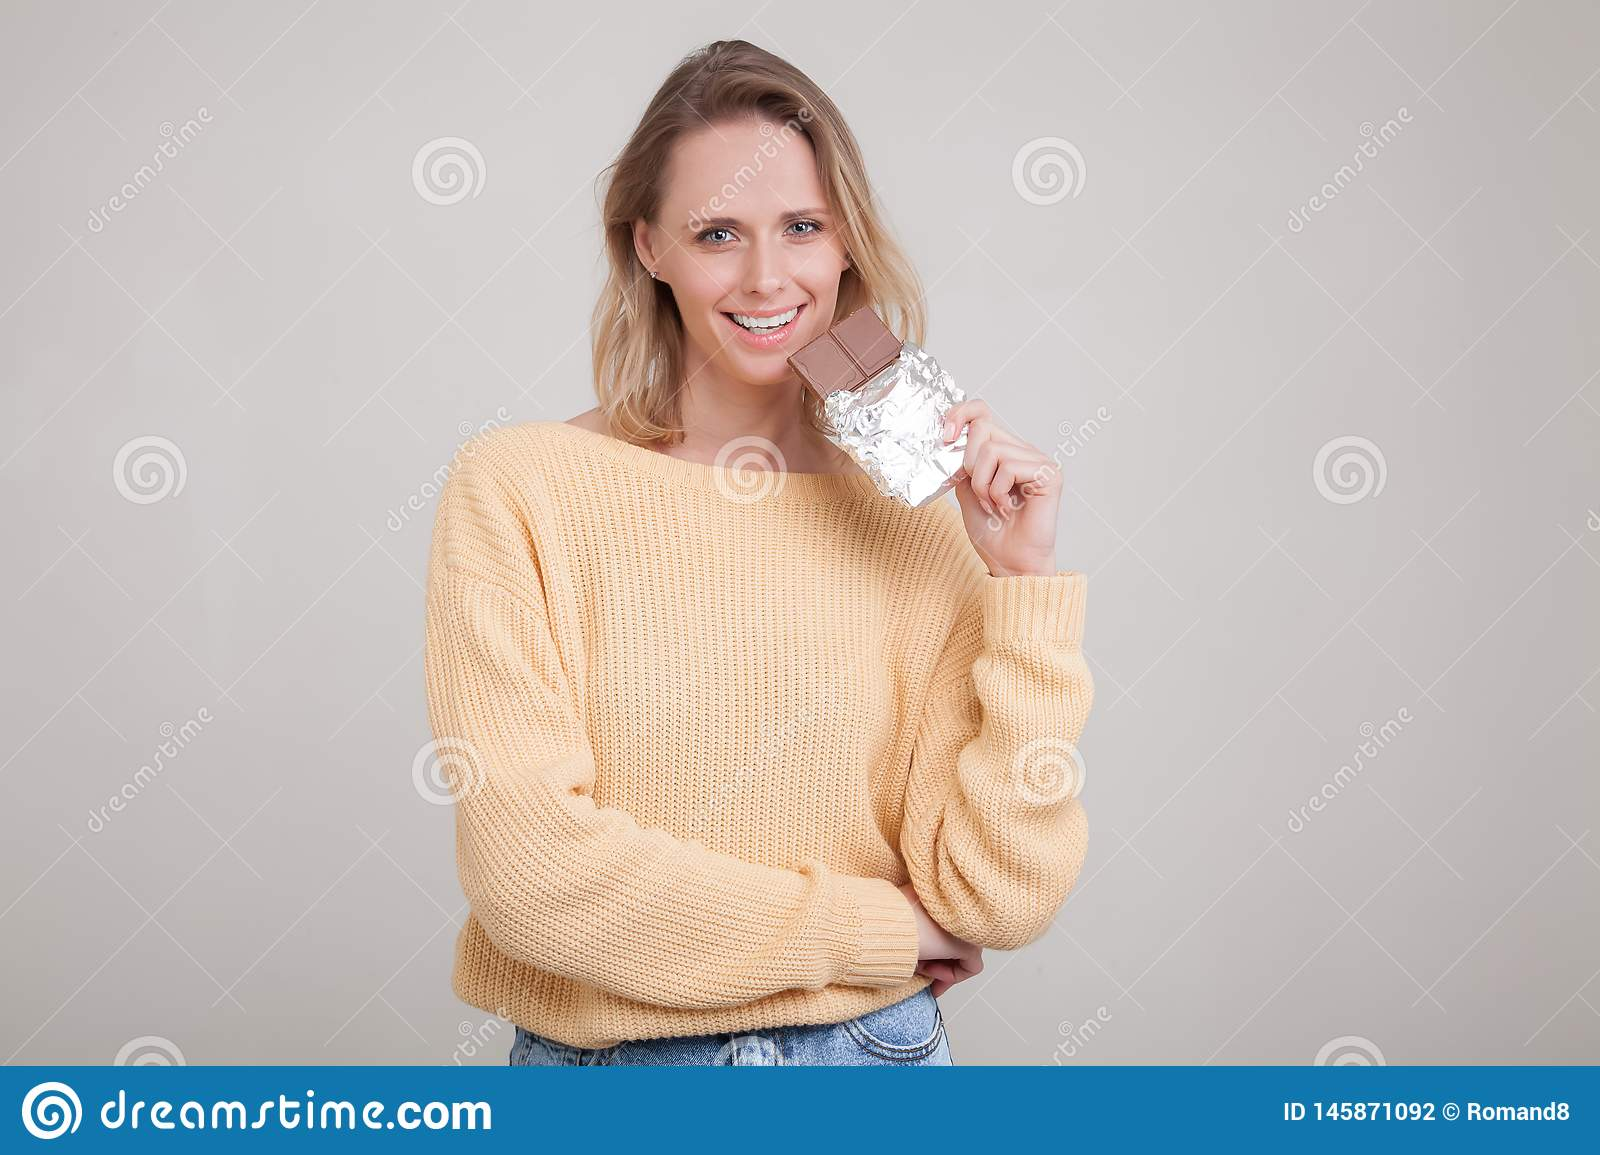 A beautiful young tender girl with blond hair holds a chocolate bar in the face she is wearing in a yellow sweater. poses against